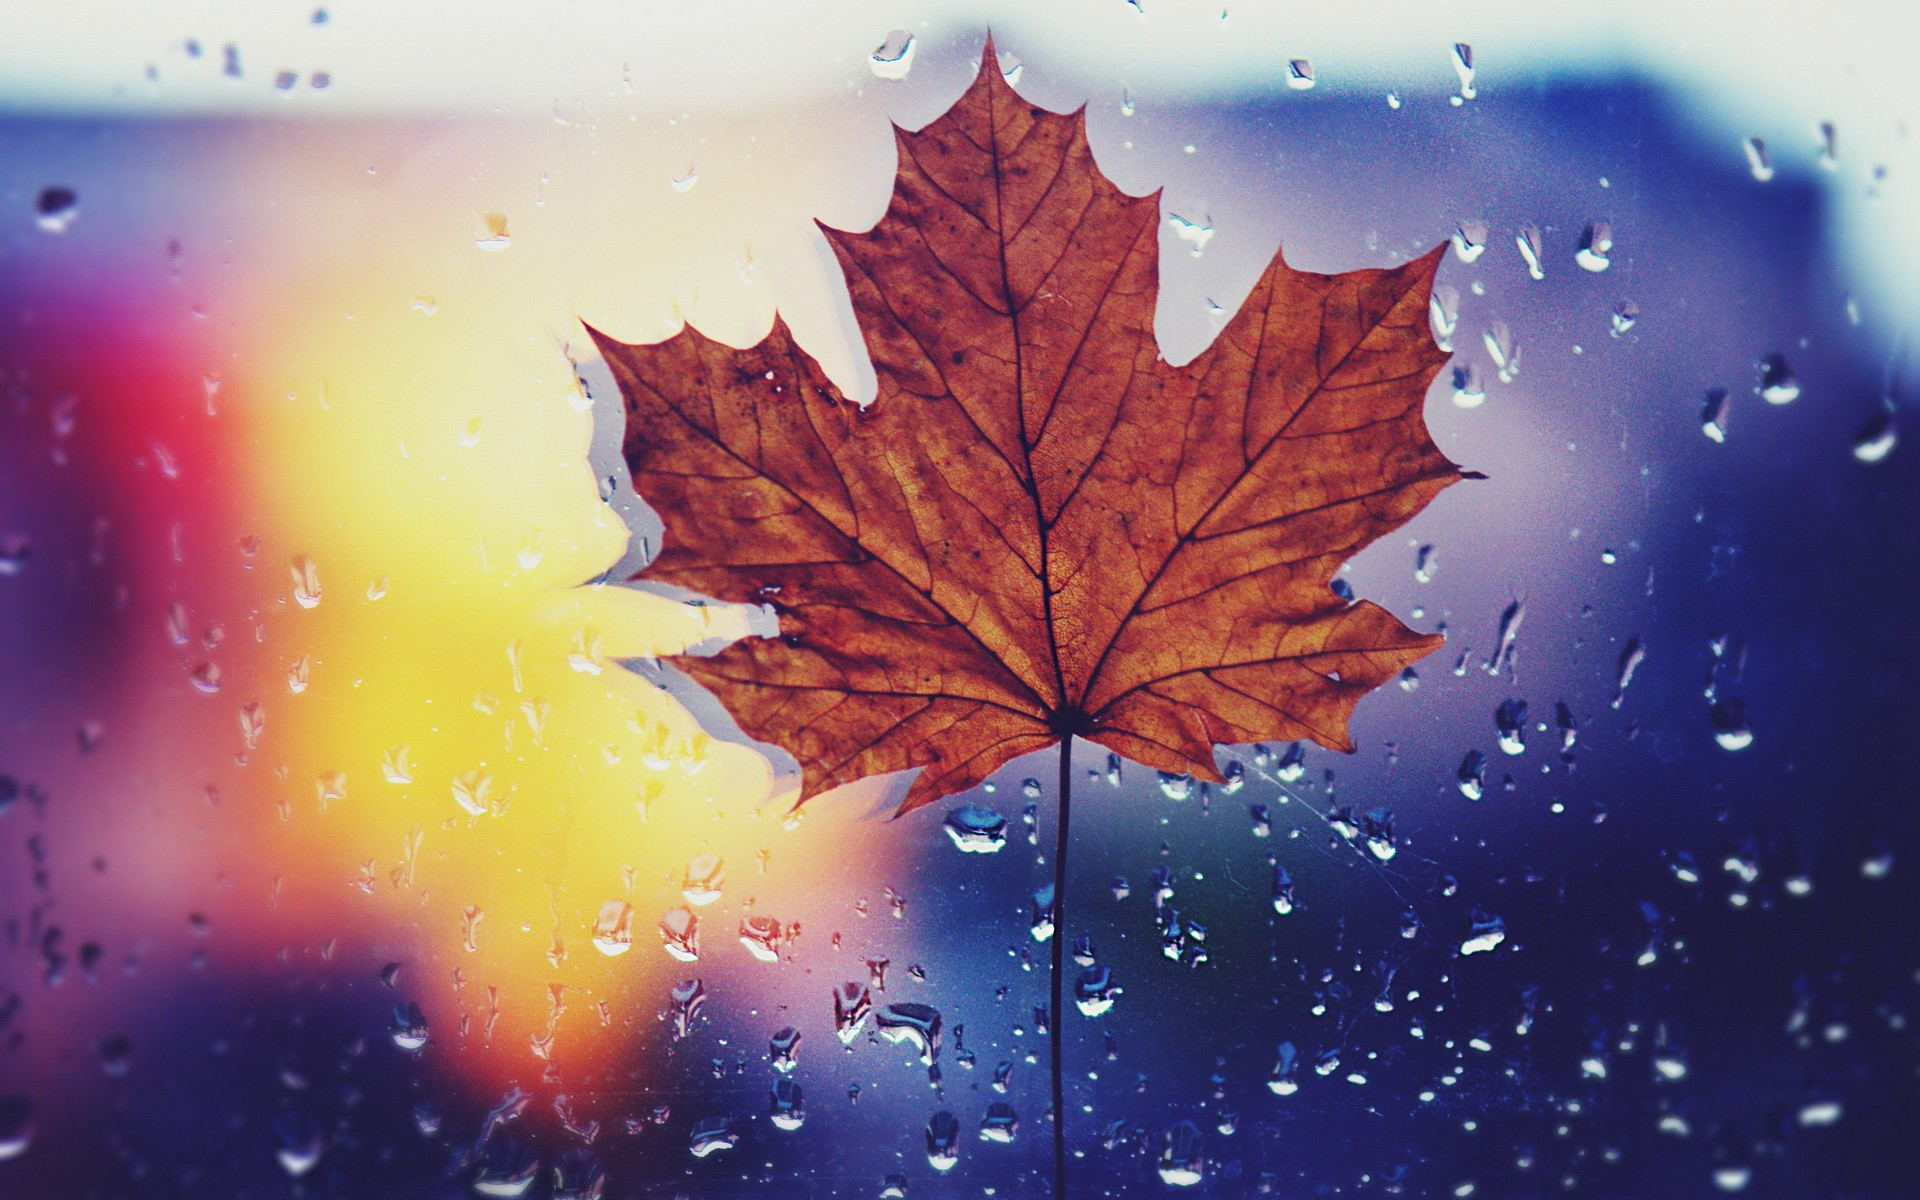 Fall Leaves Hd Mobile Wallpaper Dried Maple Leaf Wallpapers Dried Maple Leaf Stock Photos